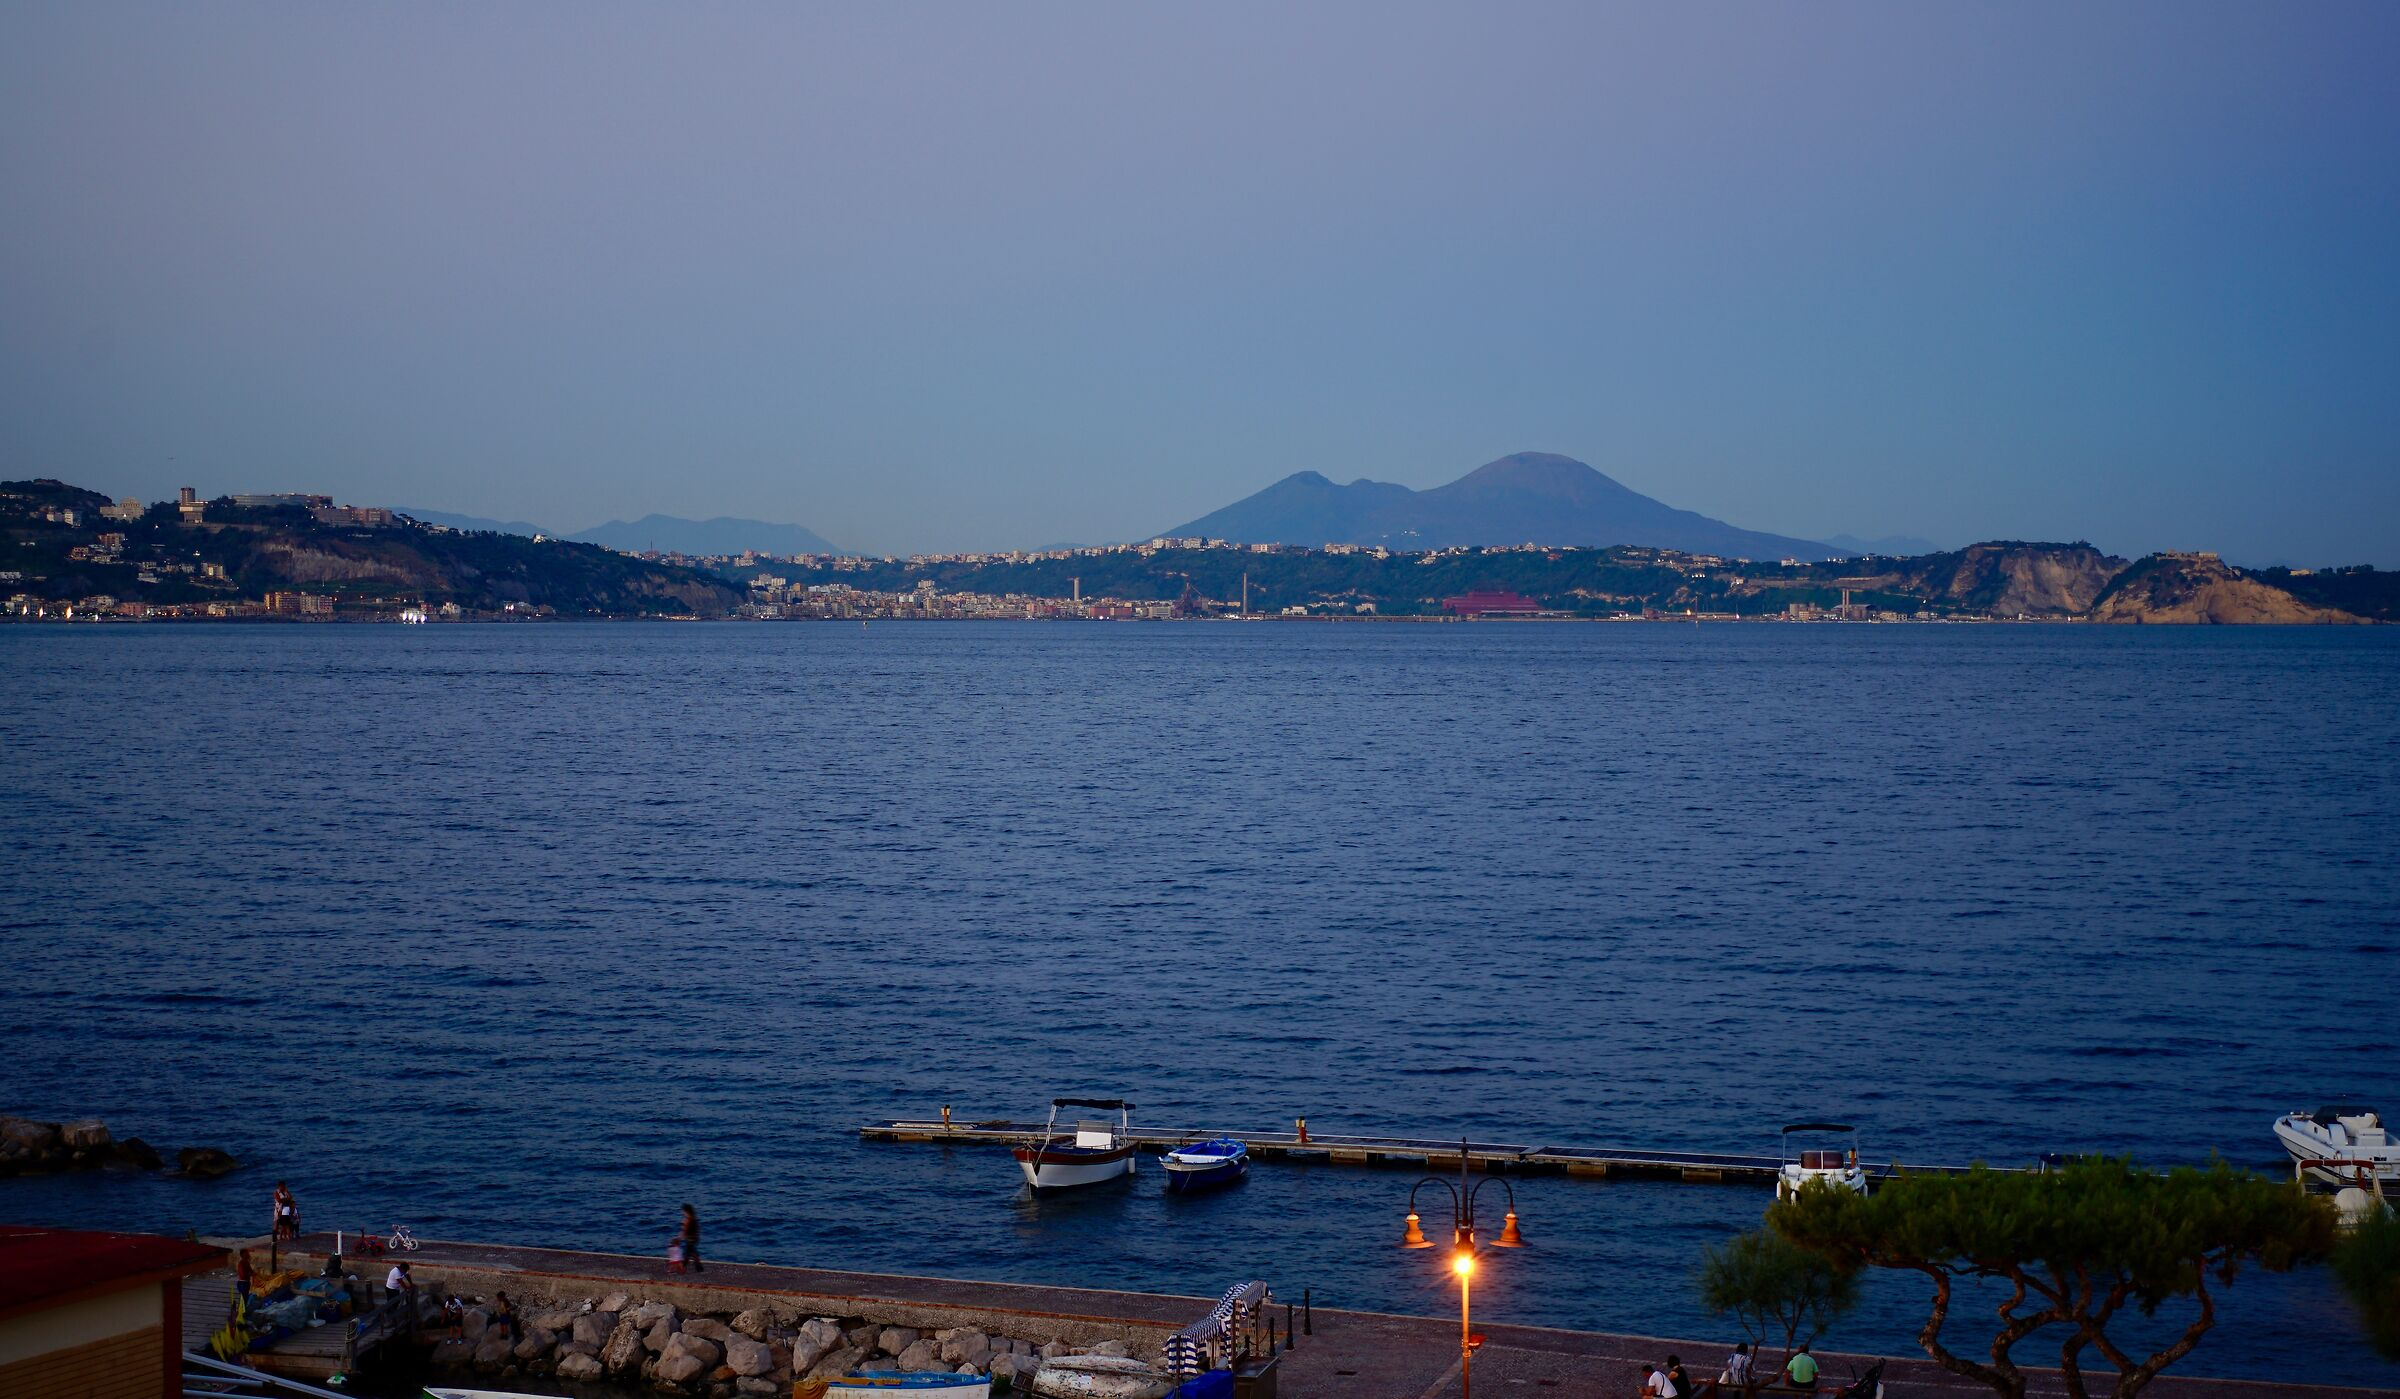 Vesuvius as seen from Bacoli...